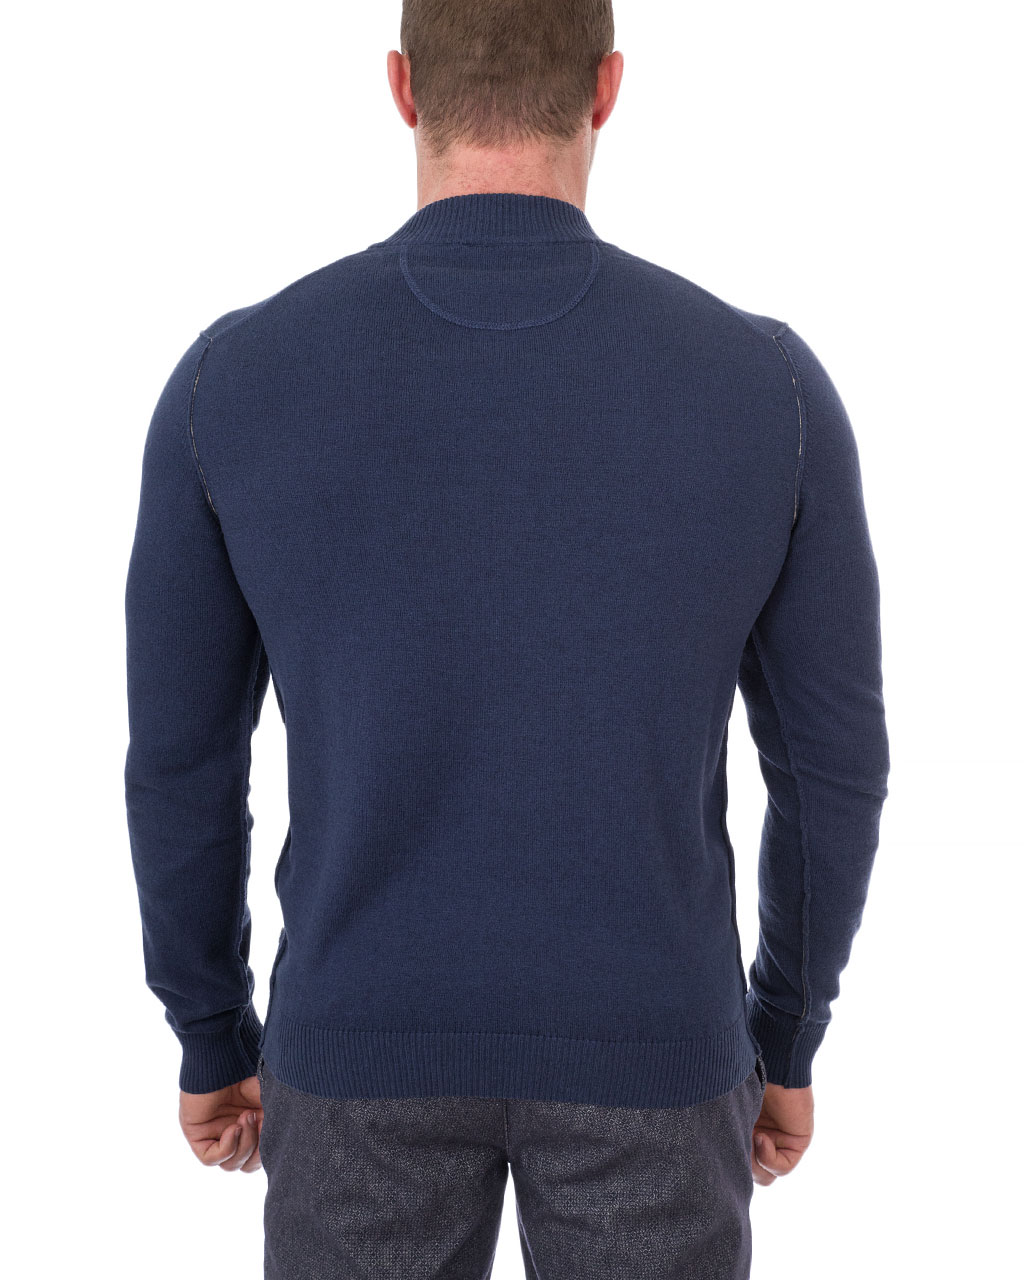 Men's jumper 75217-680-487625/7-81    (6)